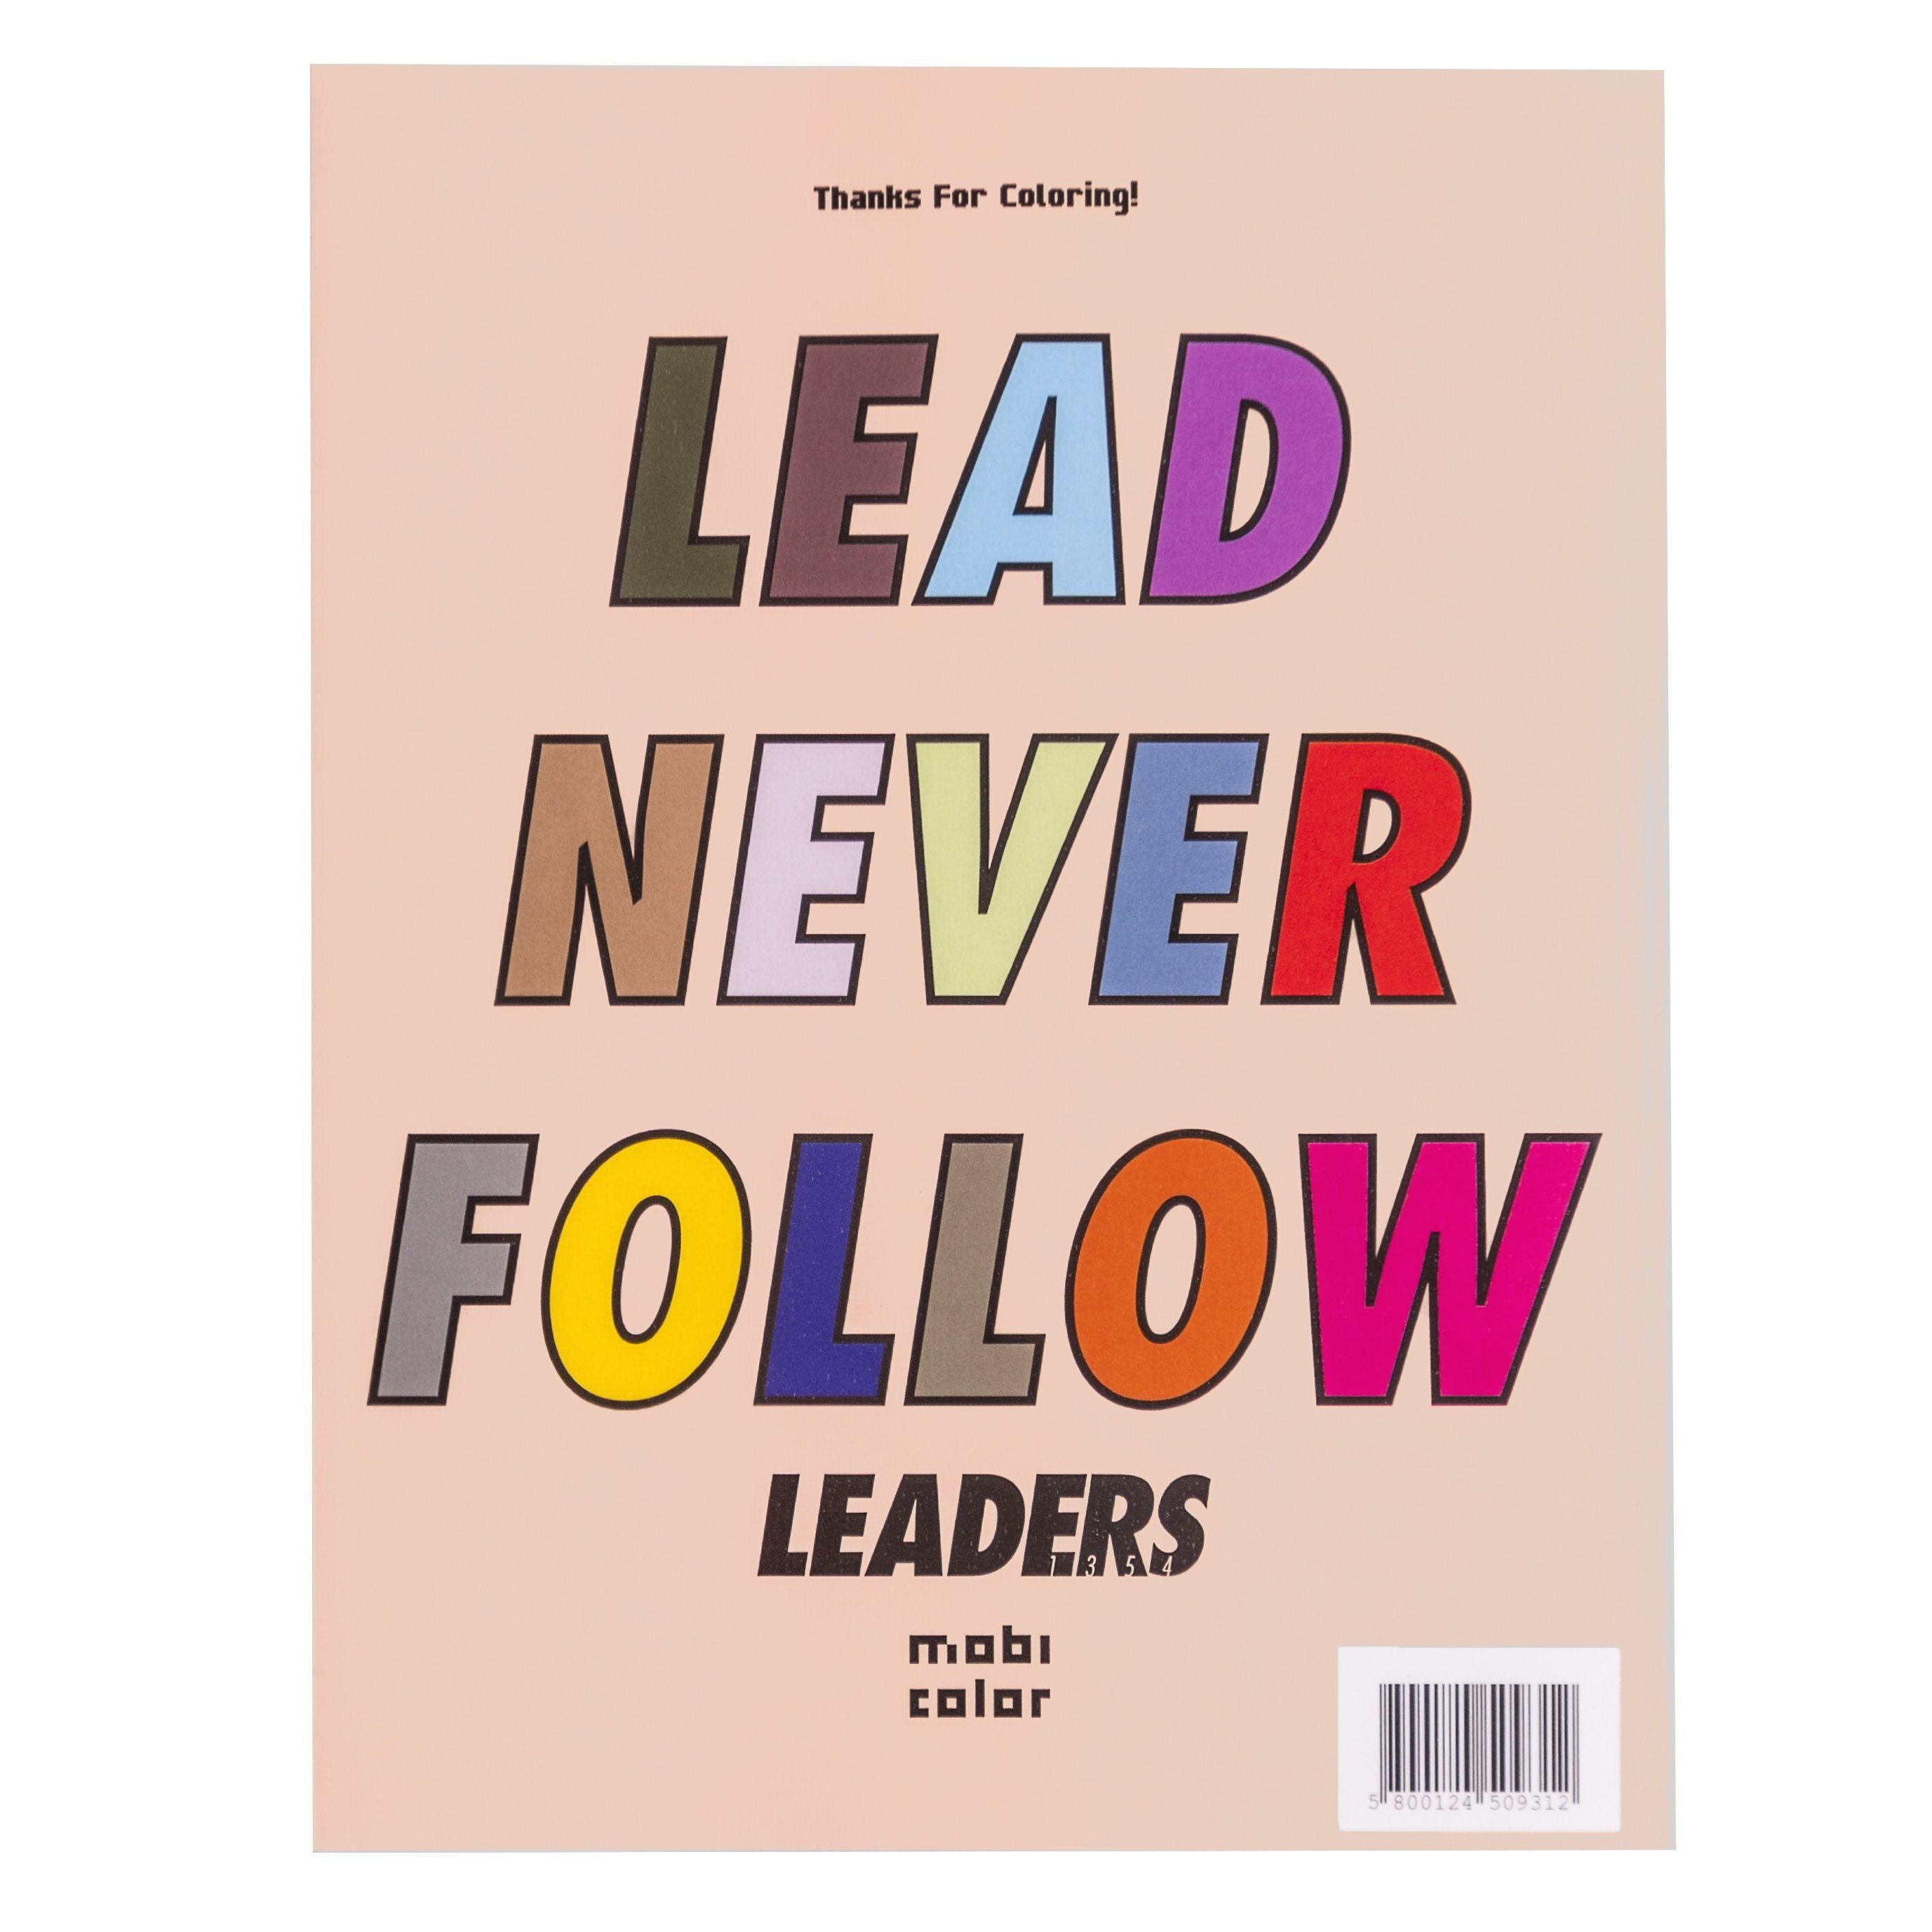 Leaders Mobi Coloring Book (15 Pages) - leaders1354